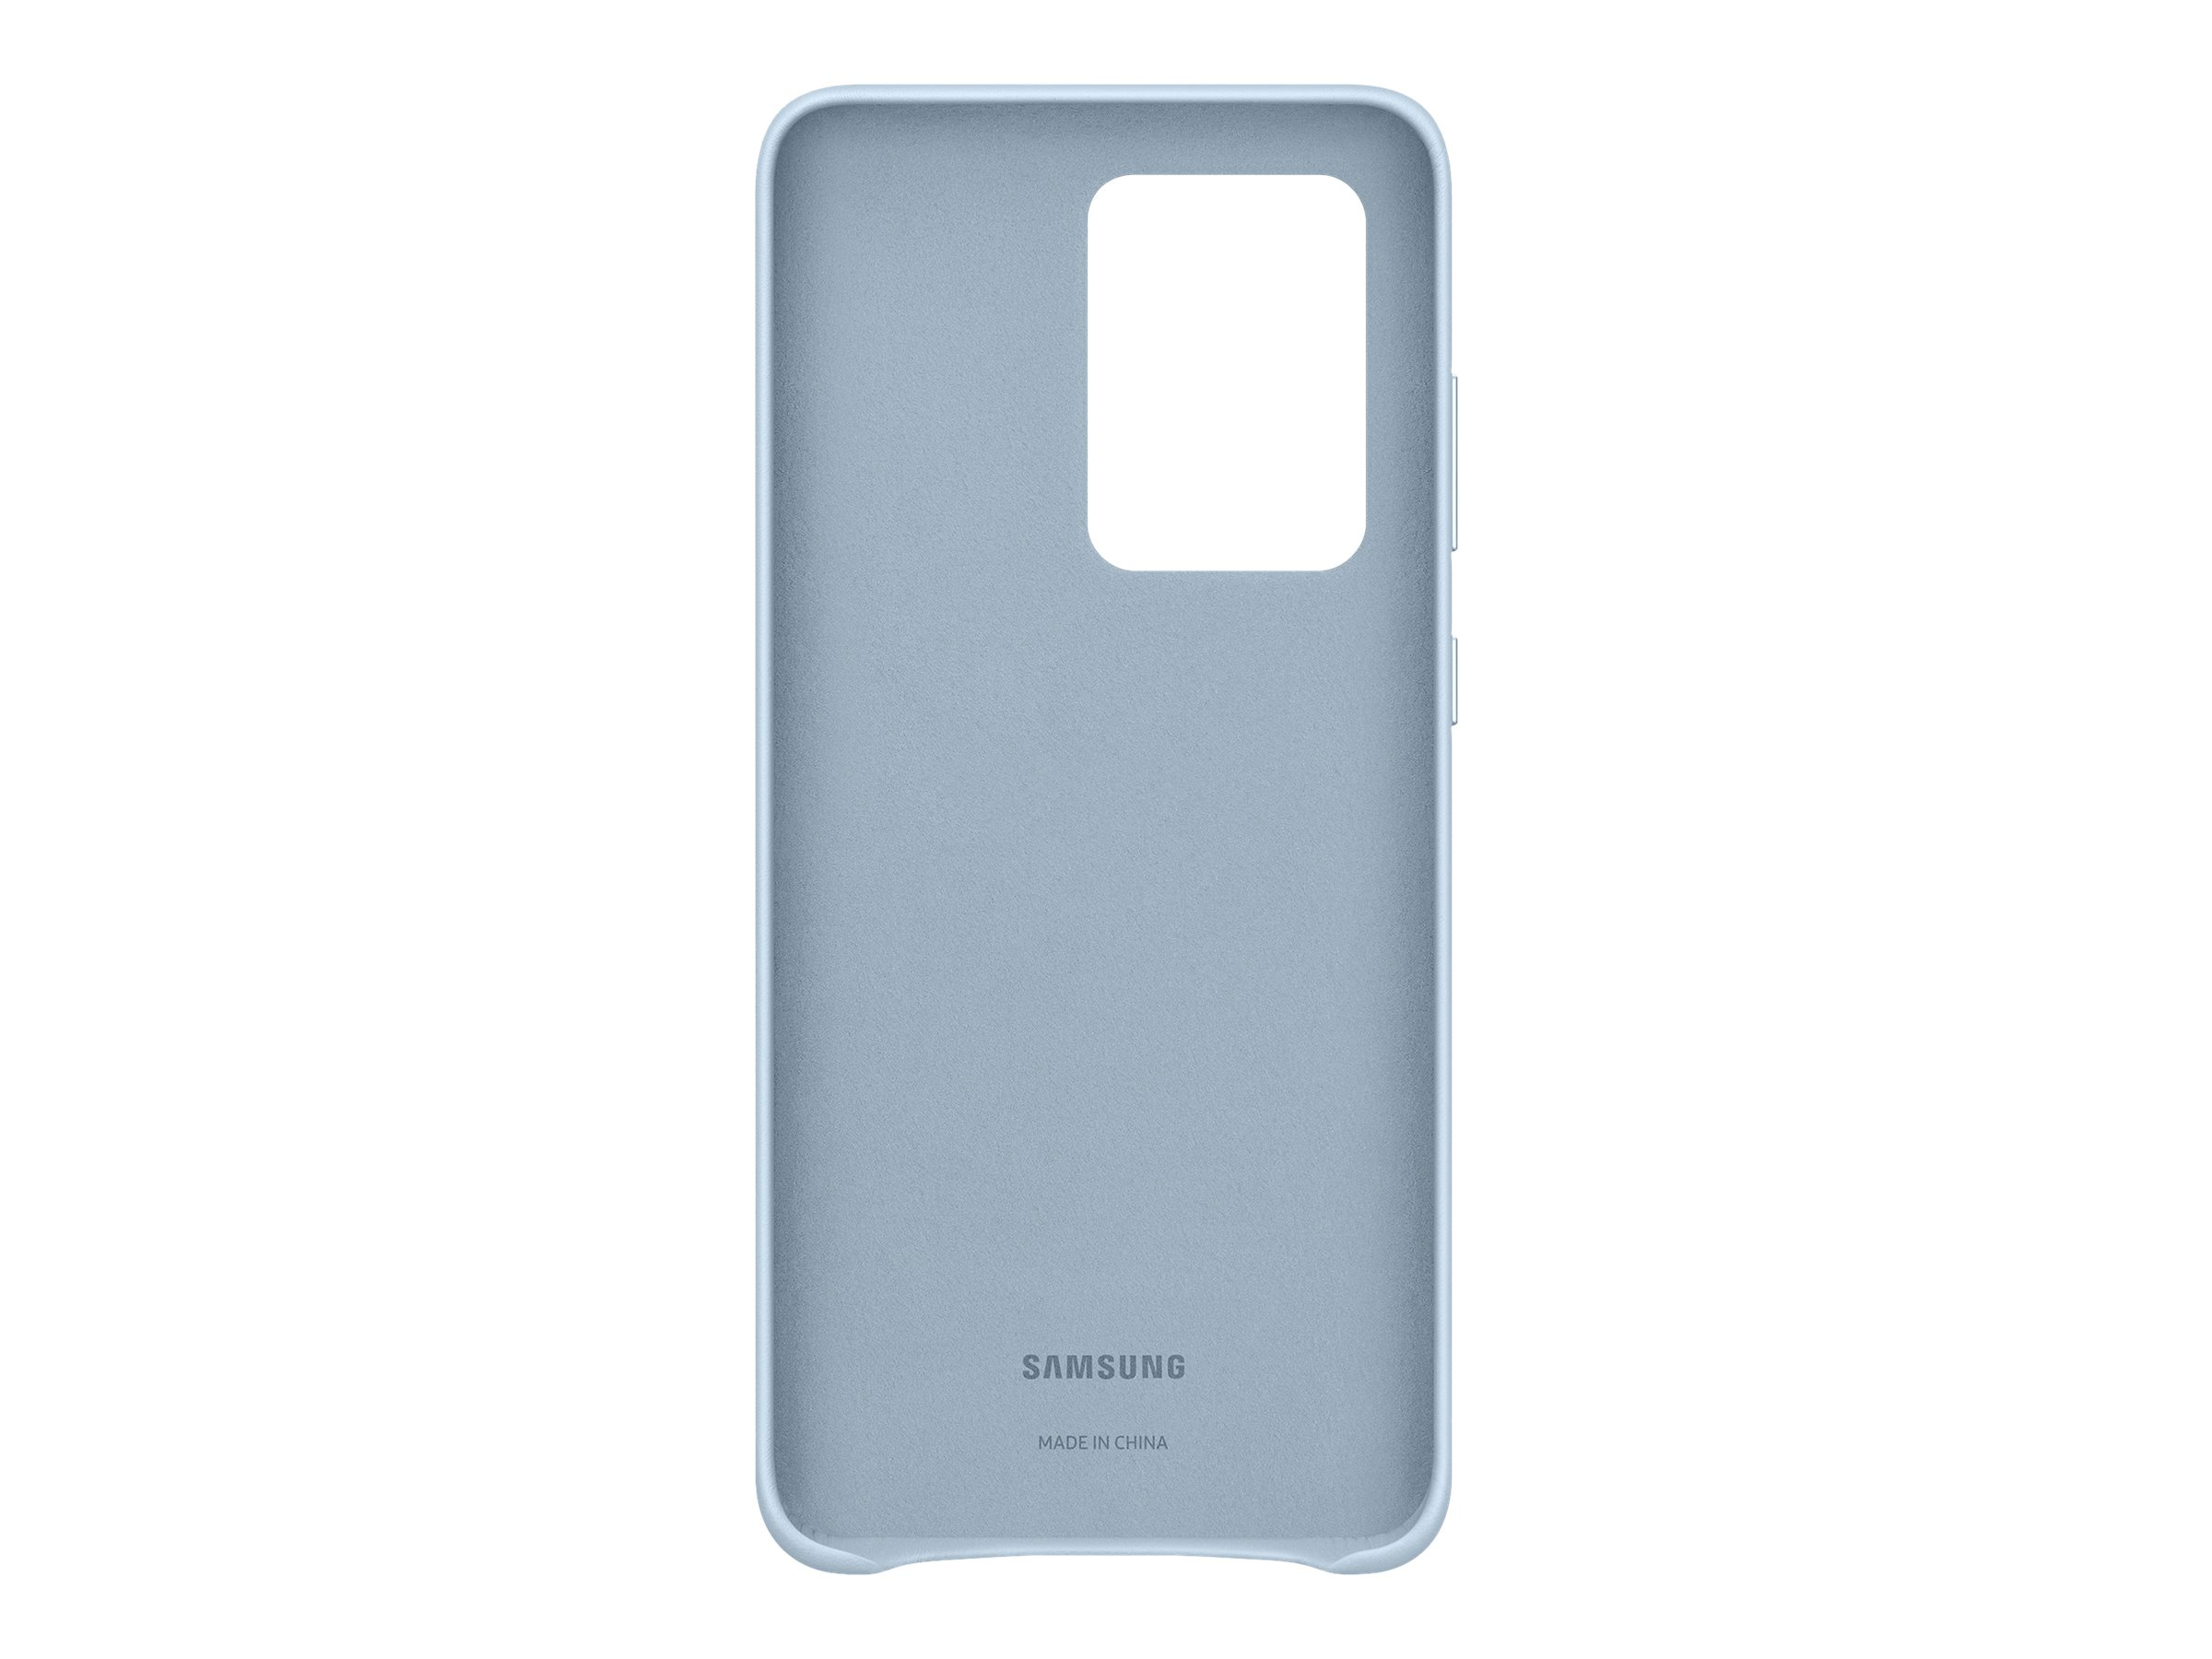 Samsung Leather Cover EF-VG988 - back cover for cell phone